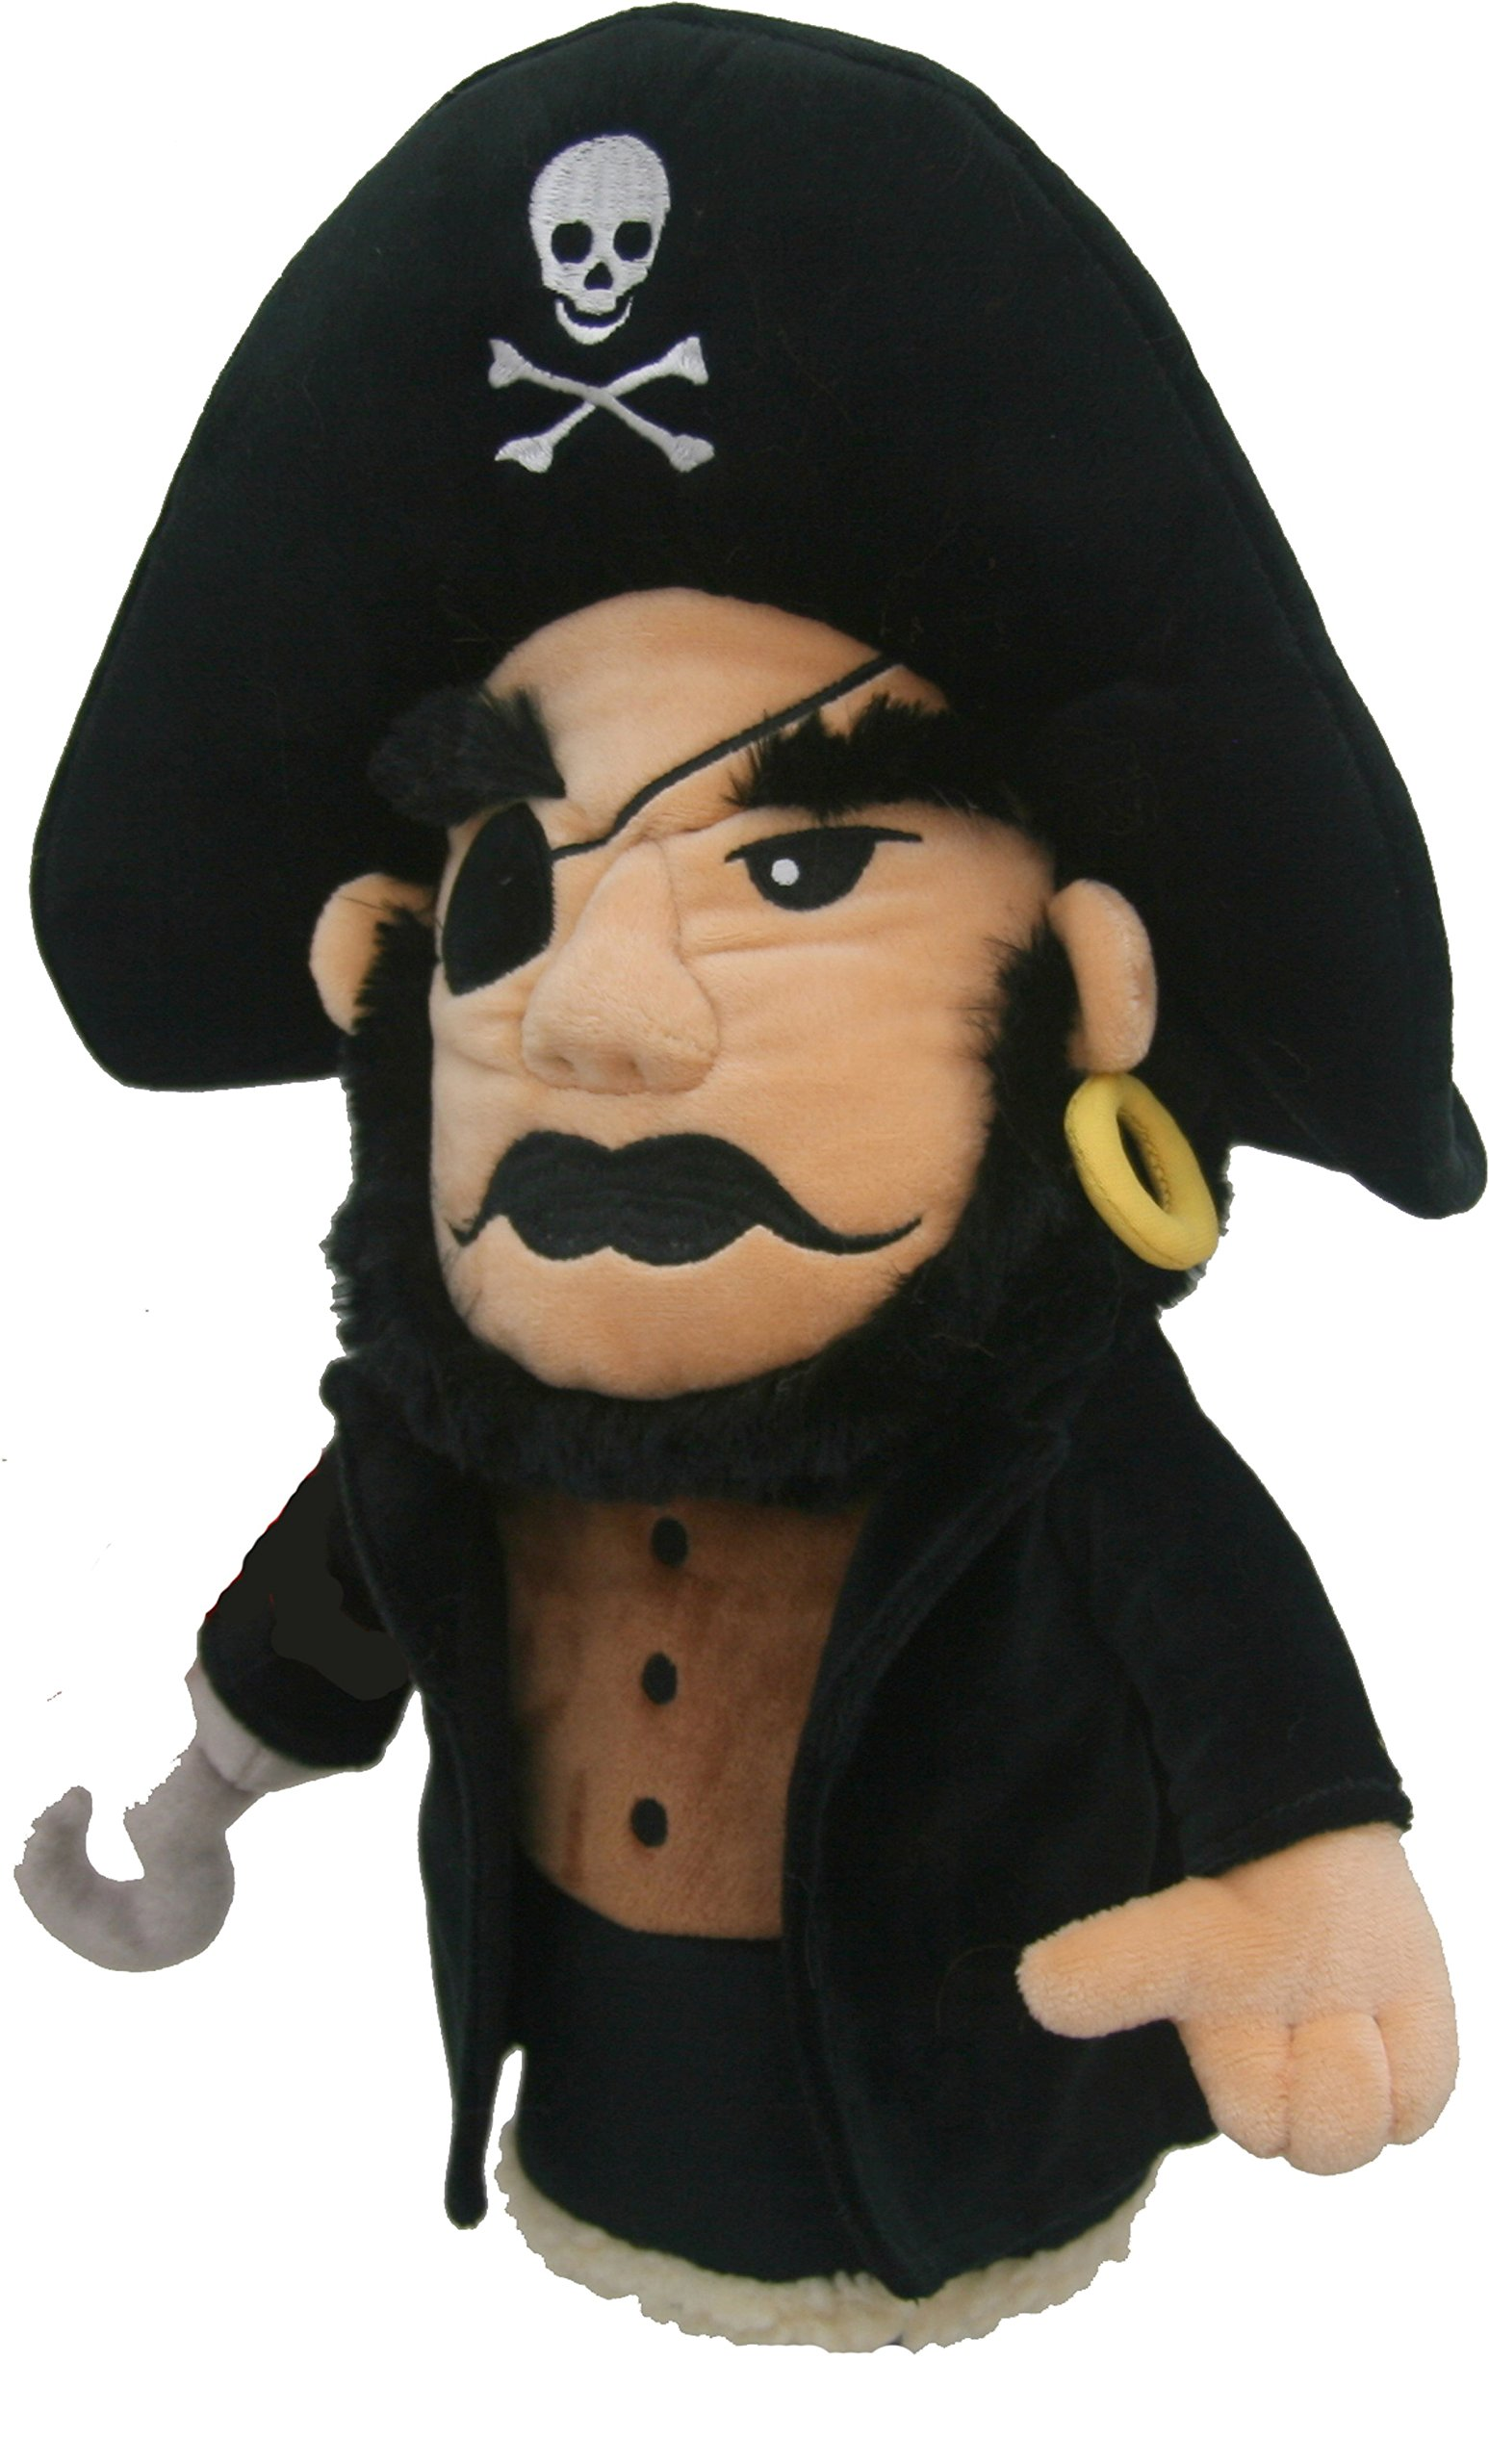 Oversized Pirate Golf Head Cover